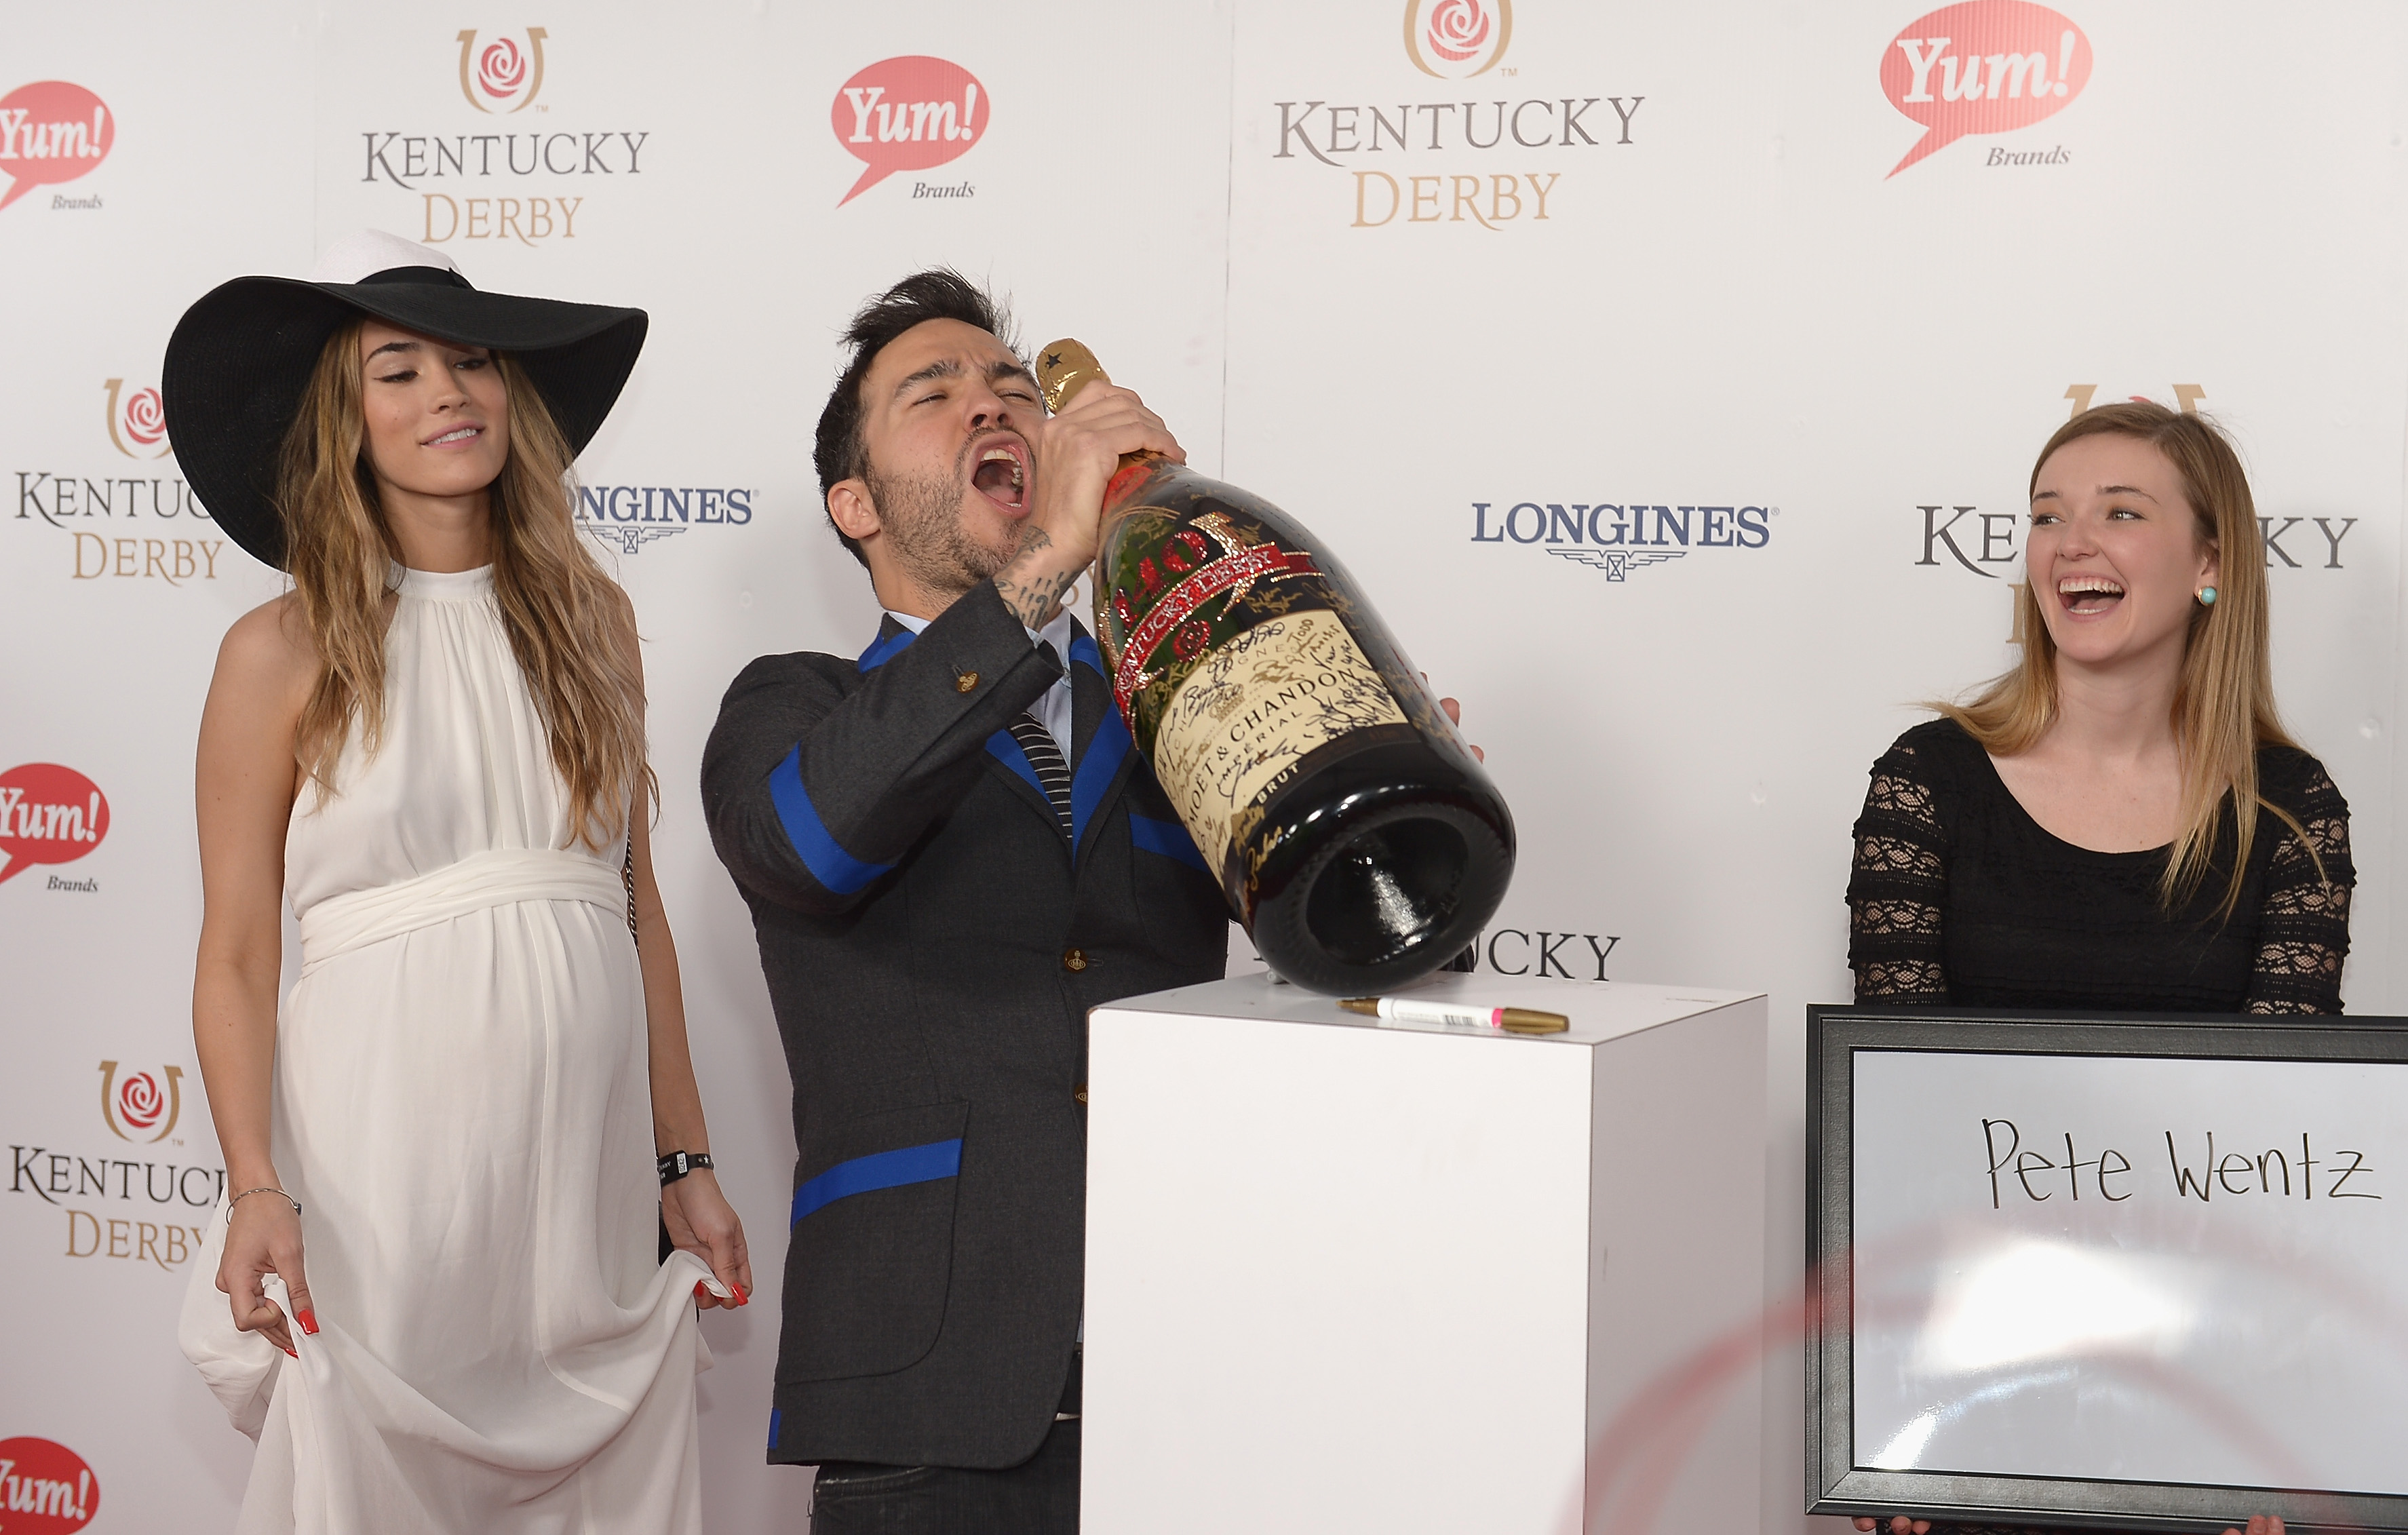 Pete Wentz toasts with Moet & Chandon at the 140th Kentucky Derby at Churchill Downs on May 3, 2014 in Louisville, Kentucky.  (Photo by Gustavo Caballero/Getty Images for Moet & Chandon)